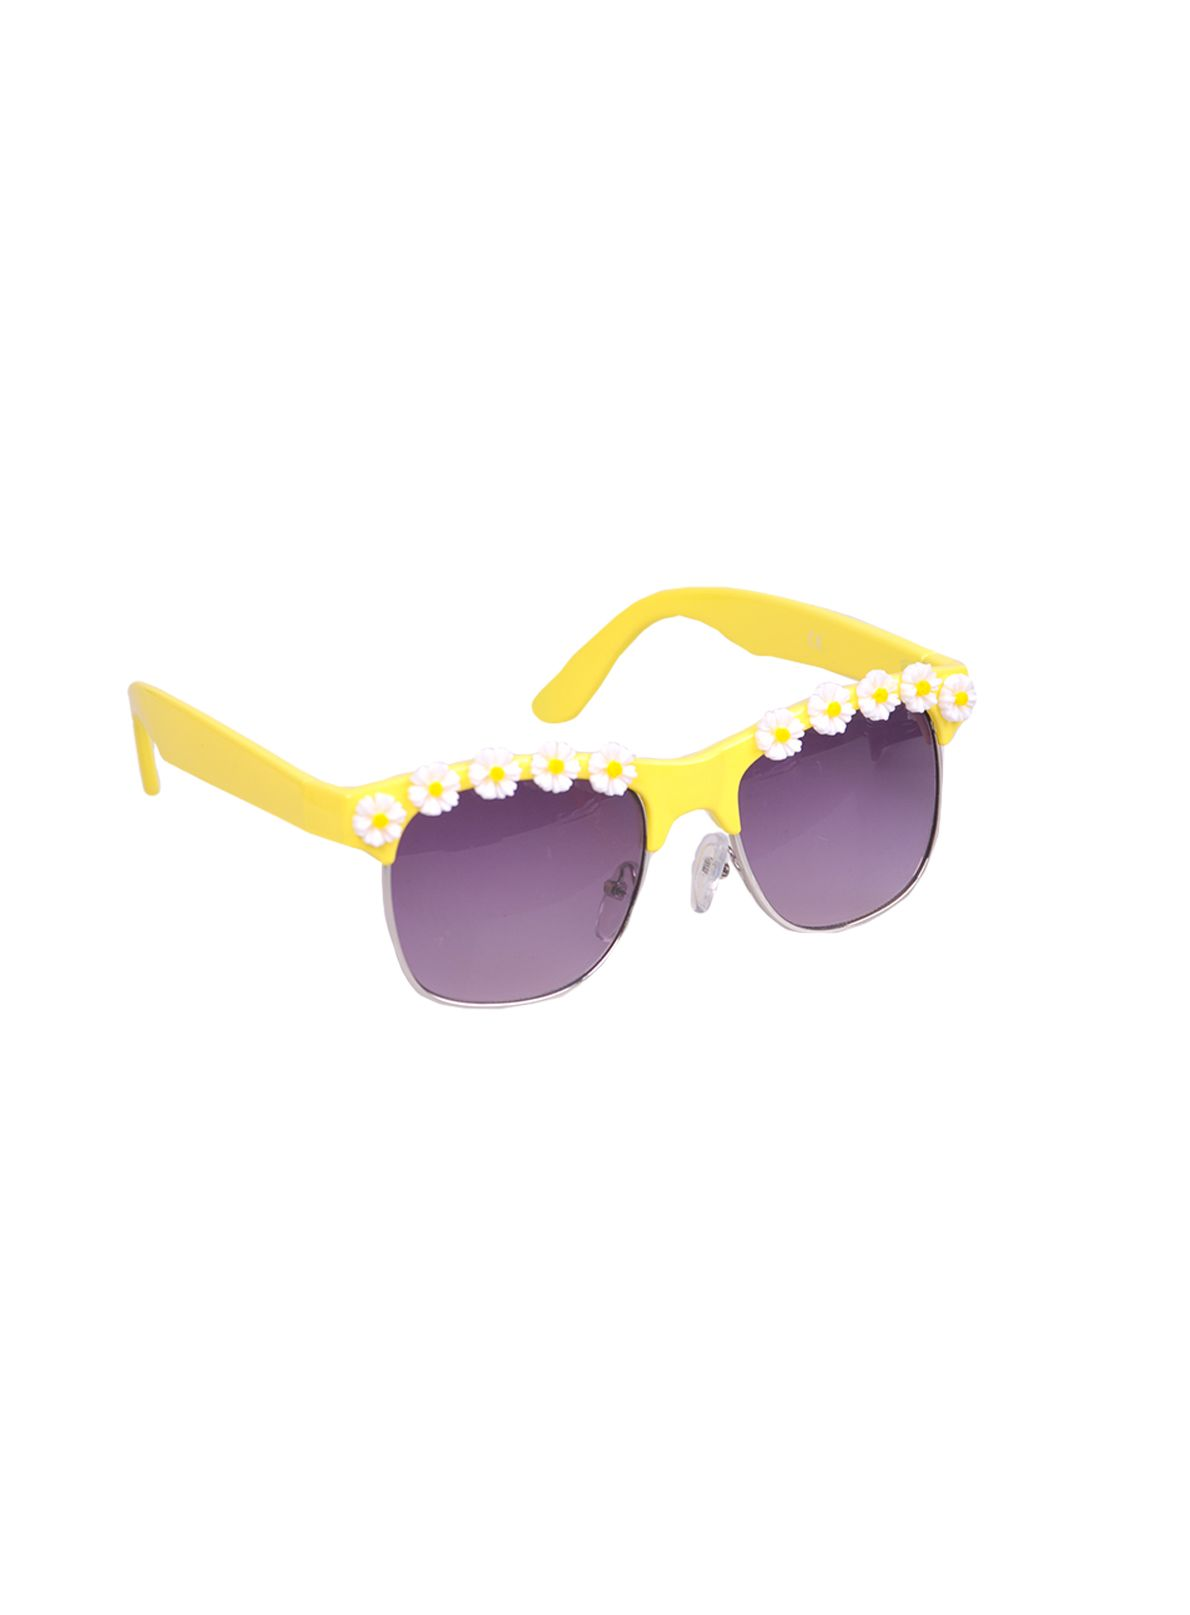 Girls daisy frame sunglasses